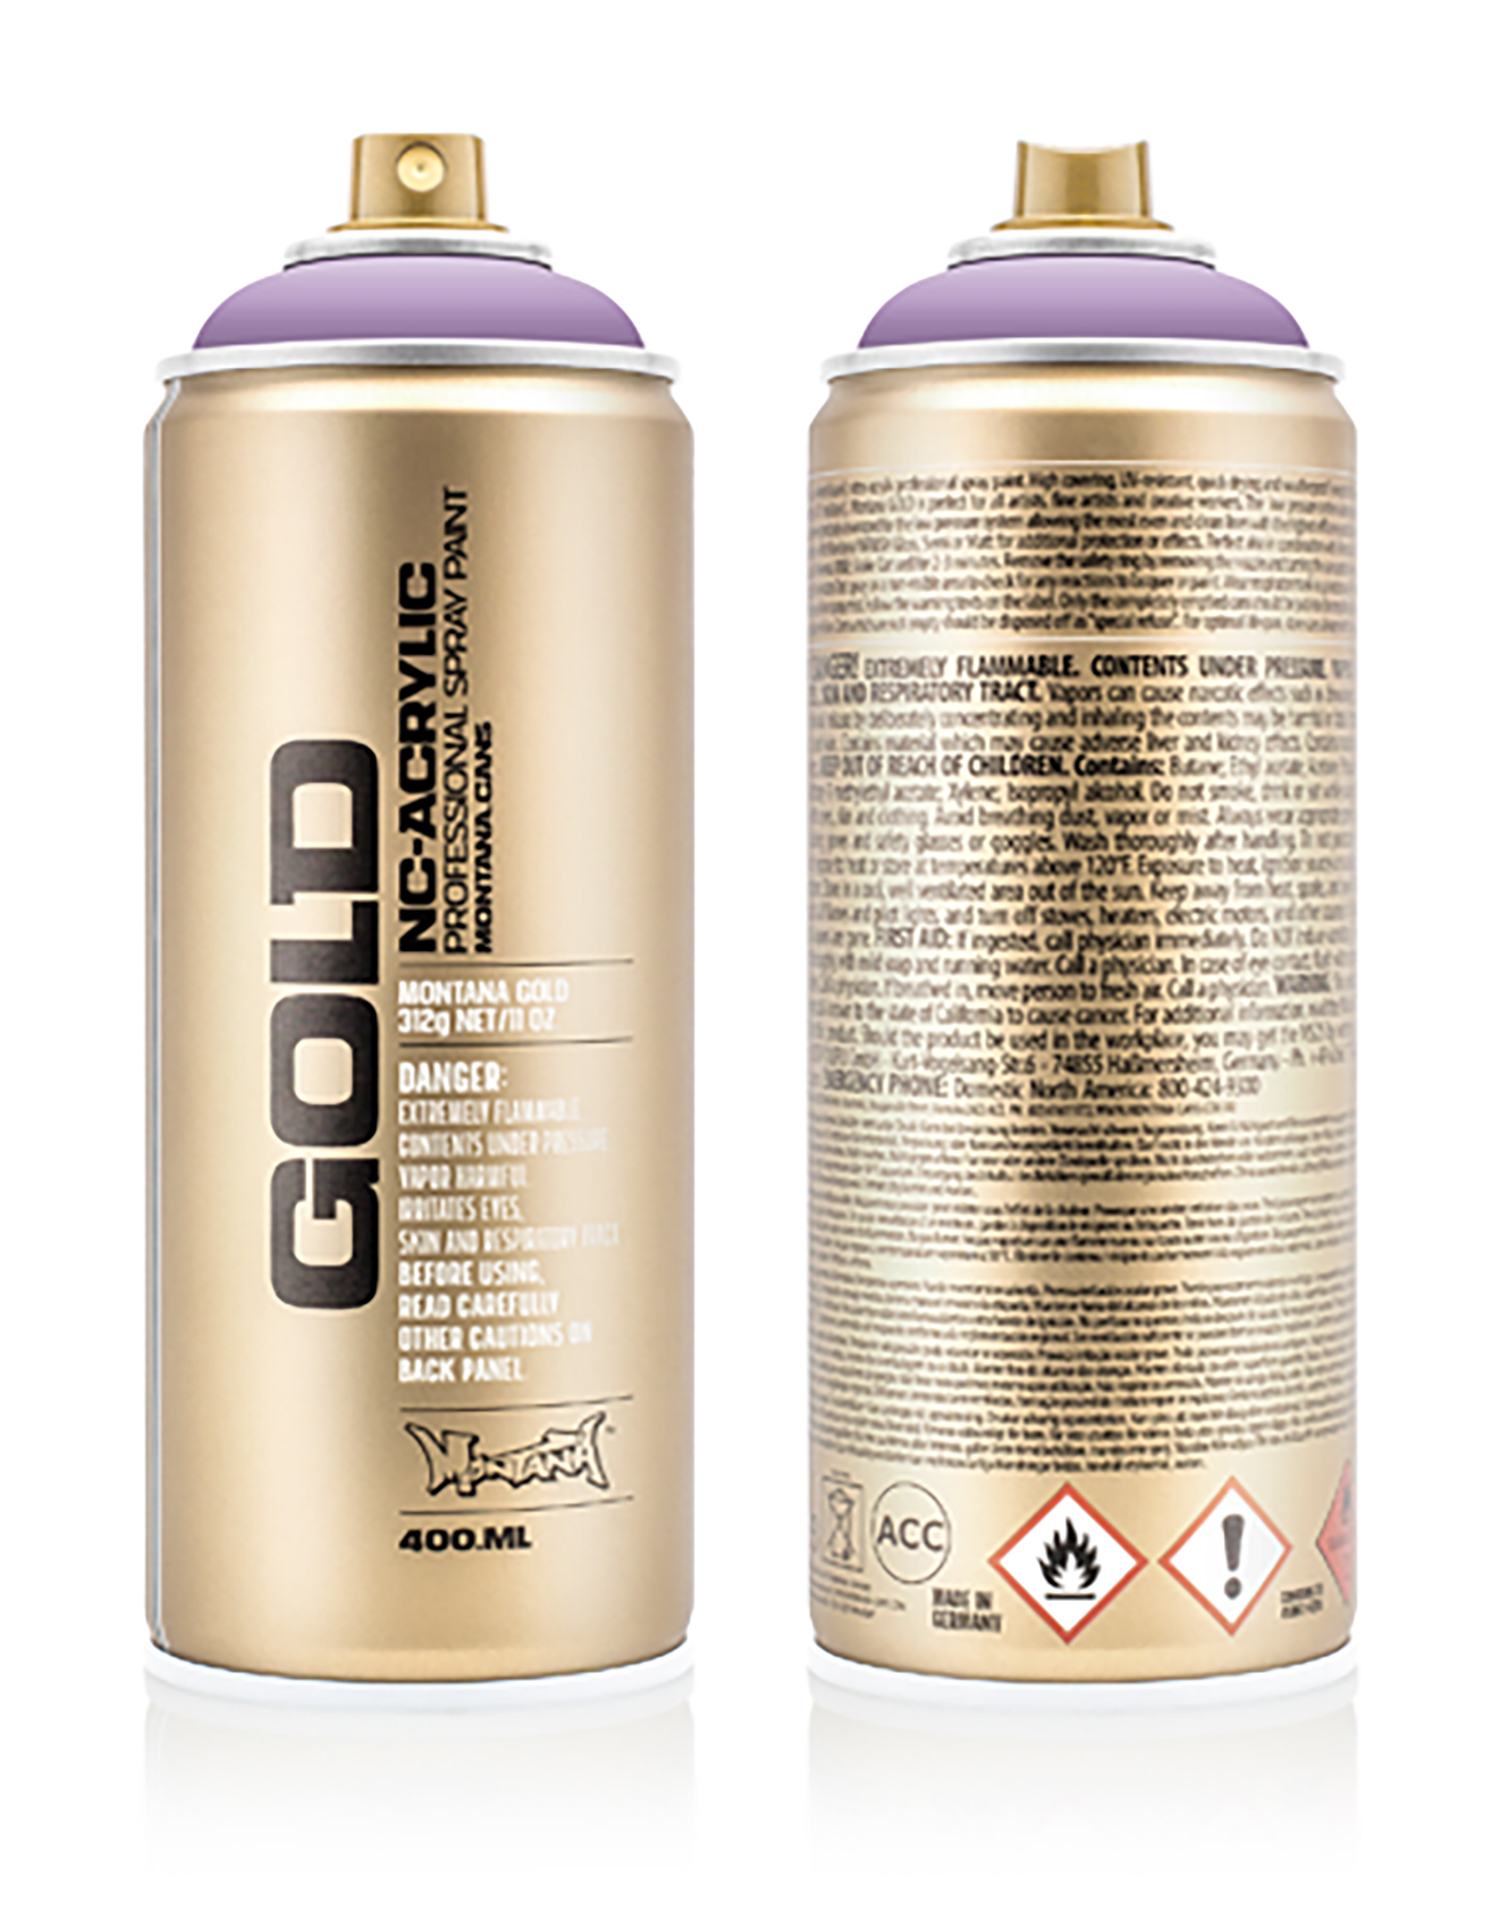 MONTANA-GOLD-SPRAY-400ML-G-4210